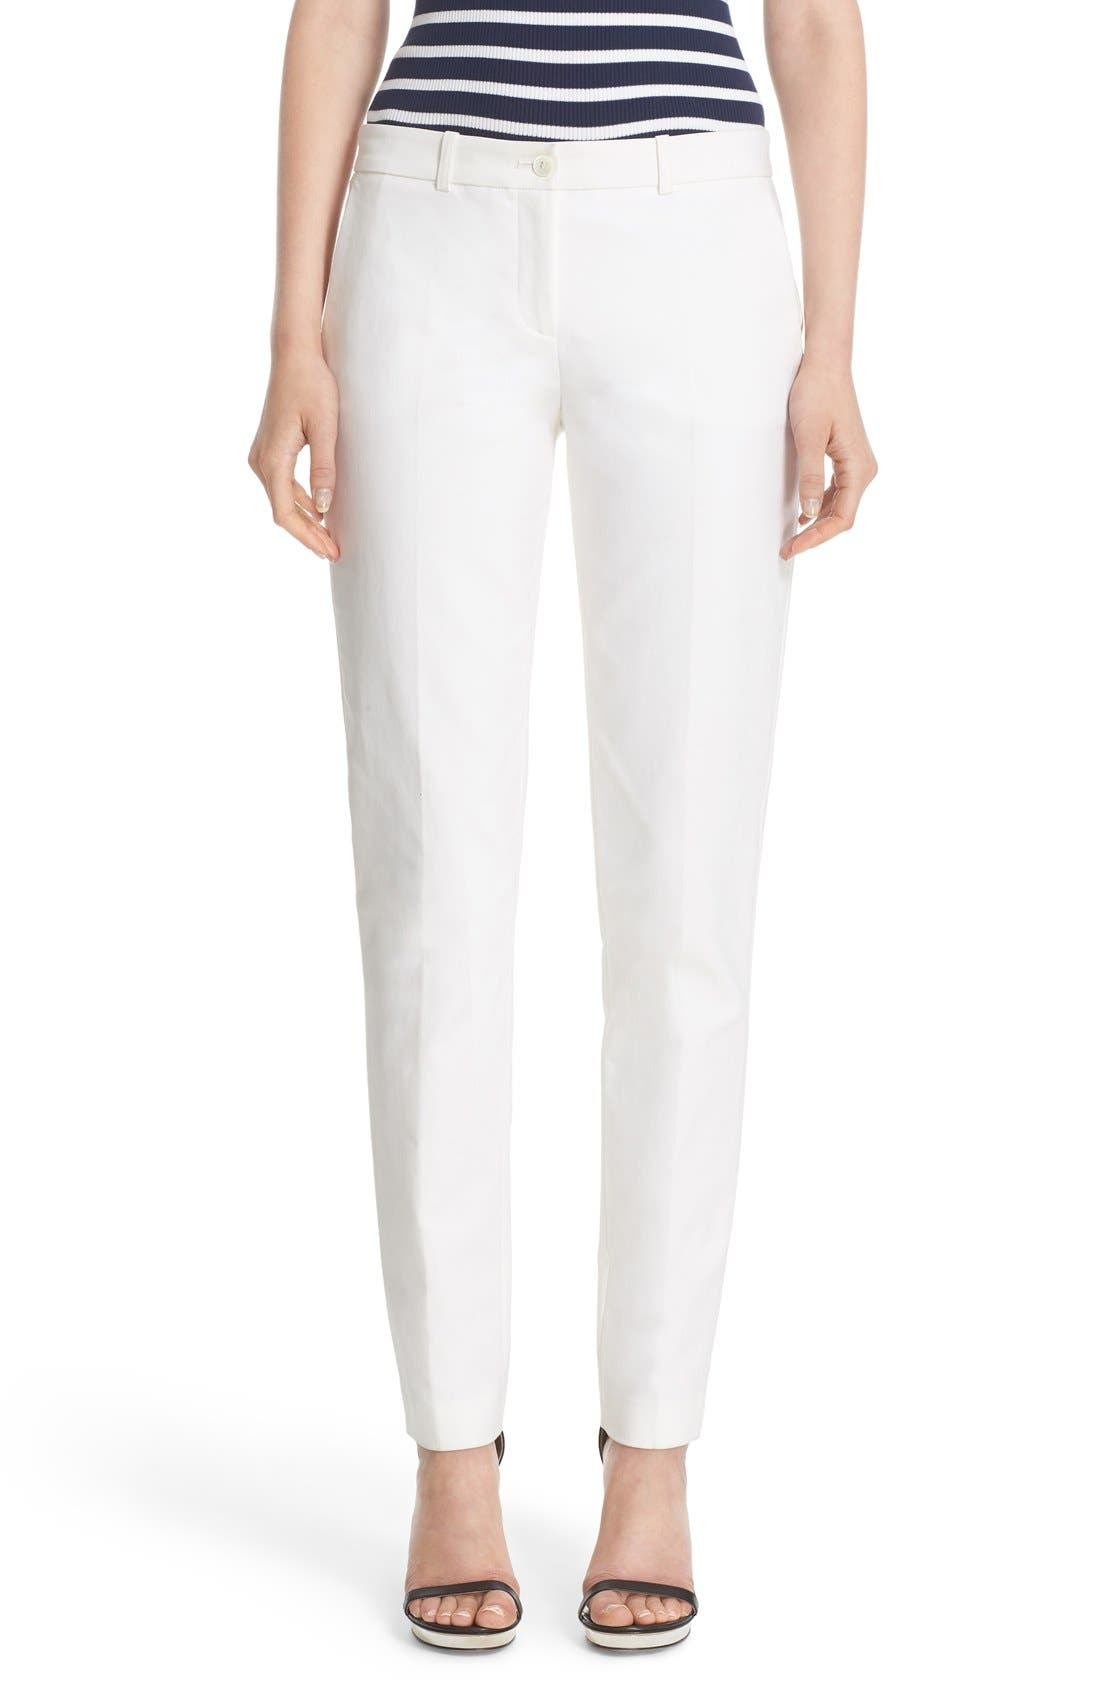 MICHAEL KORS Stretch Straight Leg Pants